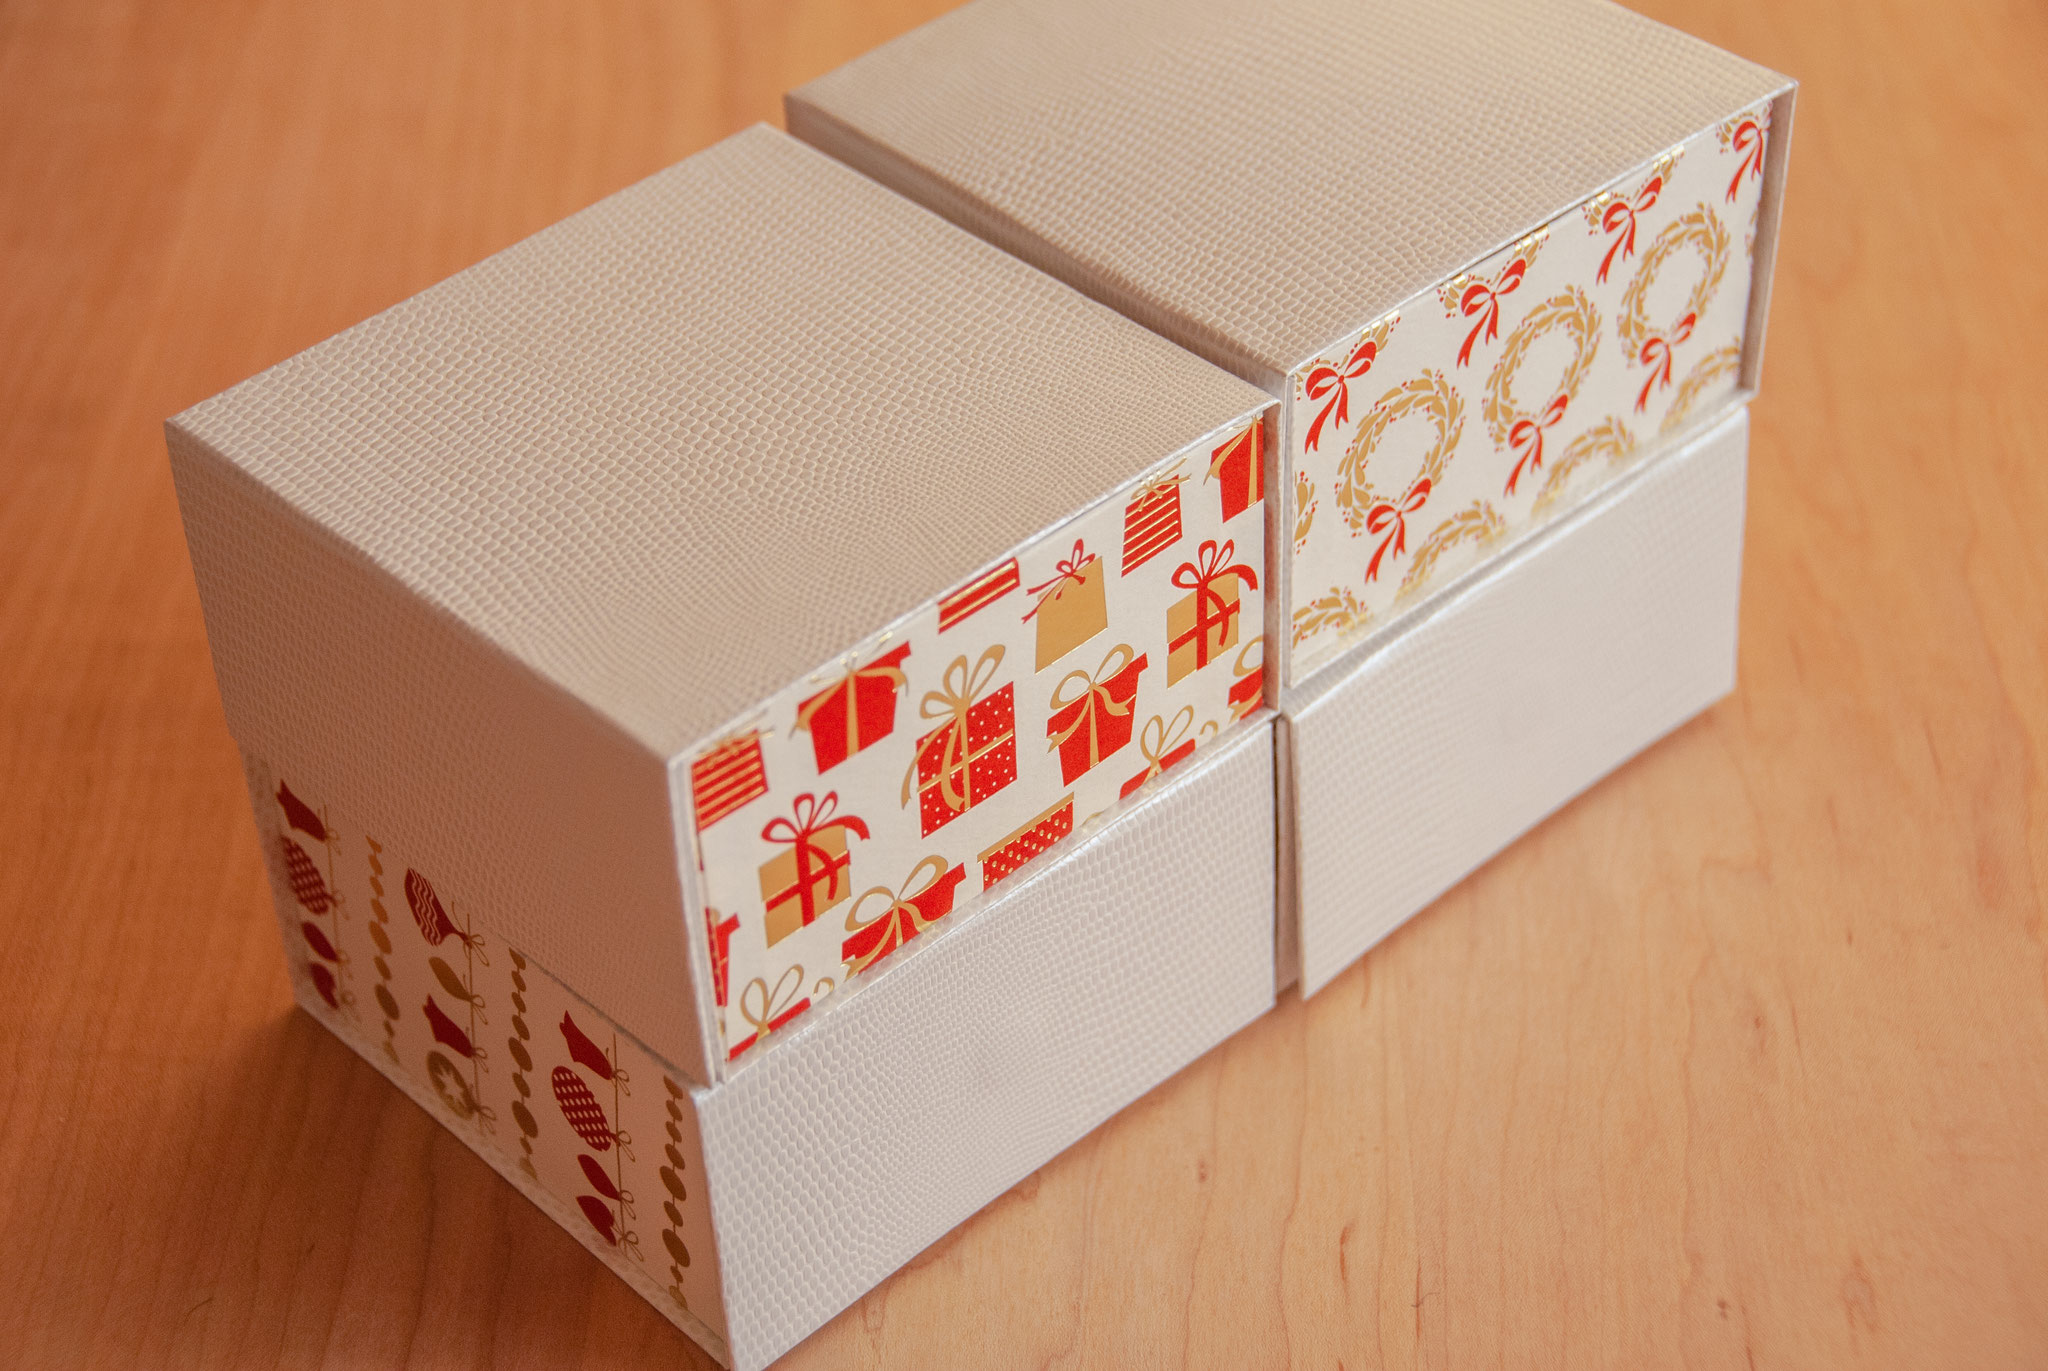 S(9.5-5) boxes with magnets, Fleur*Fleur*, fleurfleur